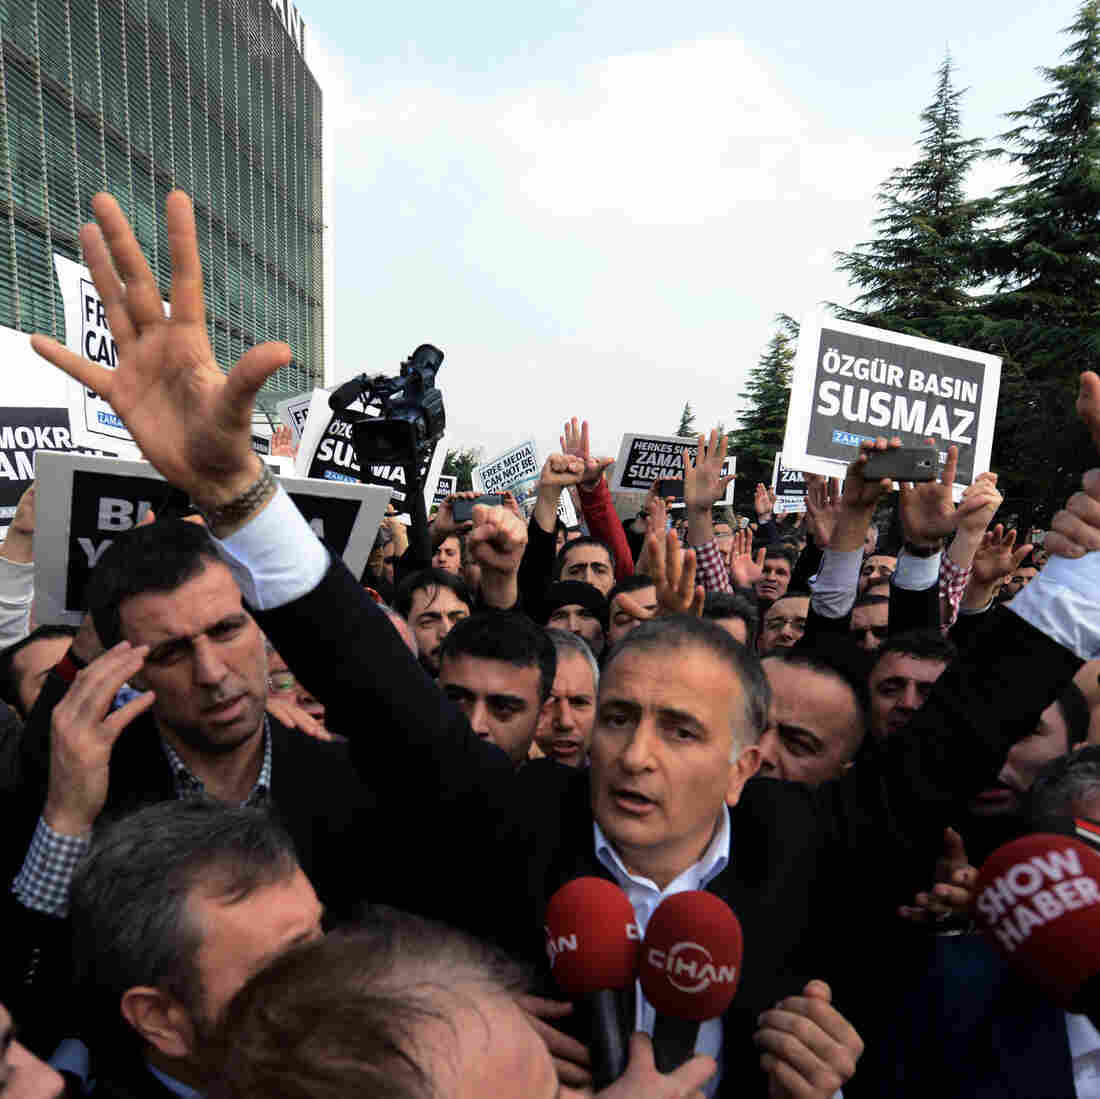 Ekrem Dumanli, editor-in-chief of Zaman, salutes cheering supporters as he is detained outside his office in Istanbul, on Sunday. Dumanli was one of two dozen people, including many journalists, detained in what is being described as a purge against anti-government figures.